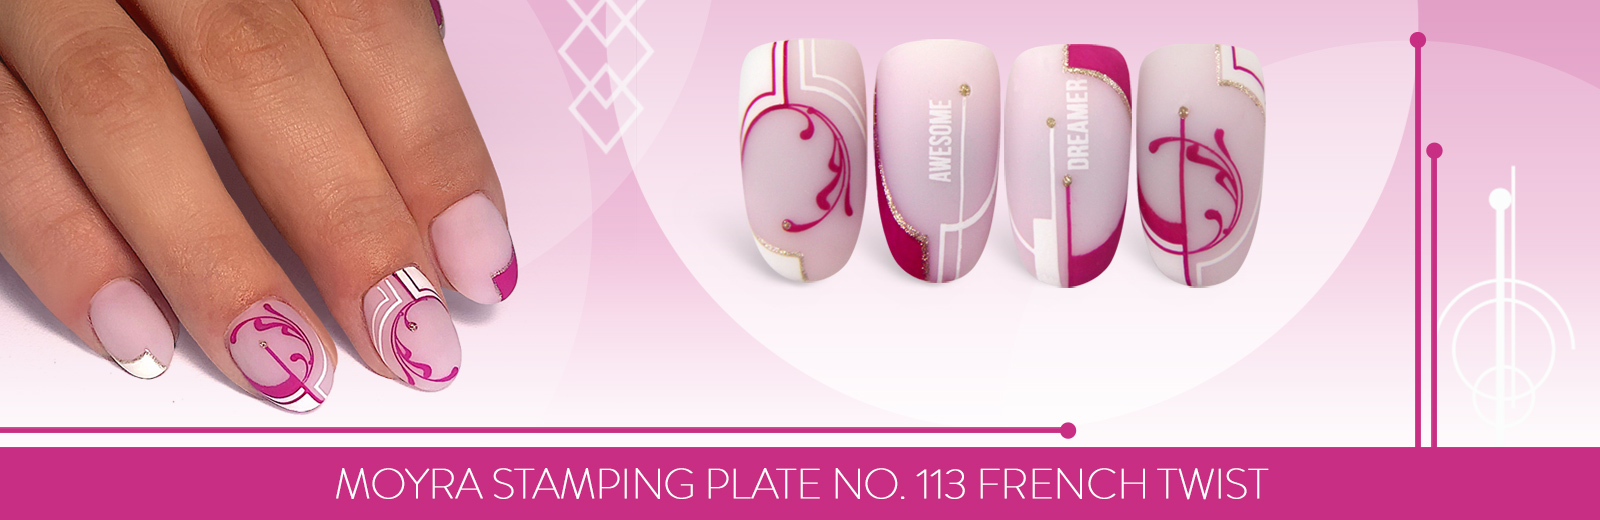 New stamping plate has arrived! No. 113 French twist